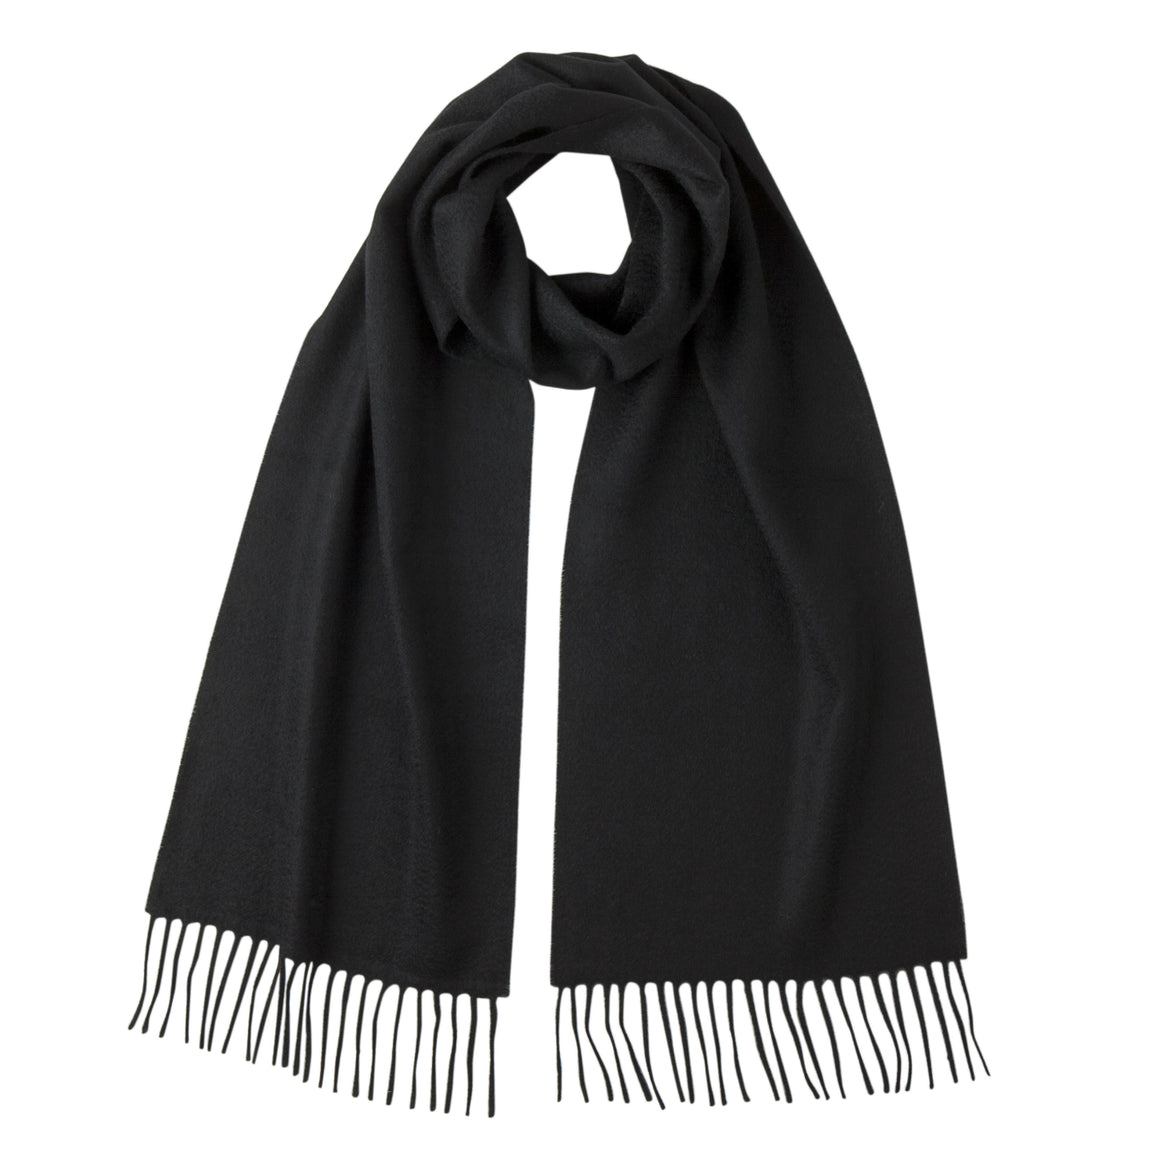 Lomond Cashmere | Black | Plain Cashmere Scarf | Shop at The Cashmere Choice | London